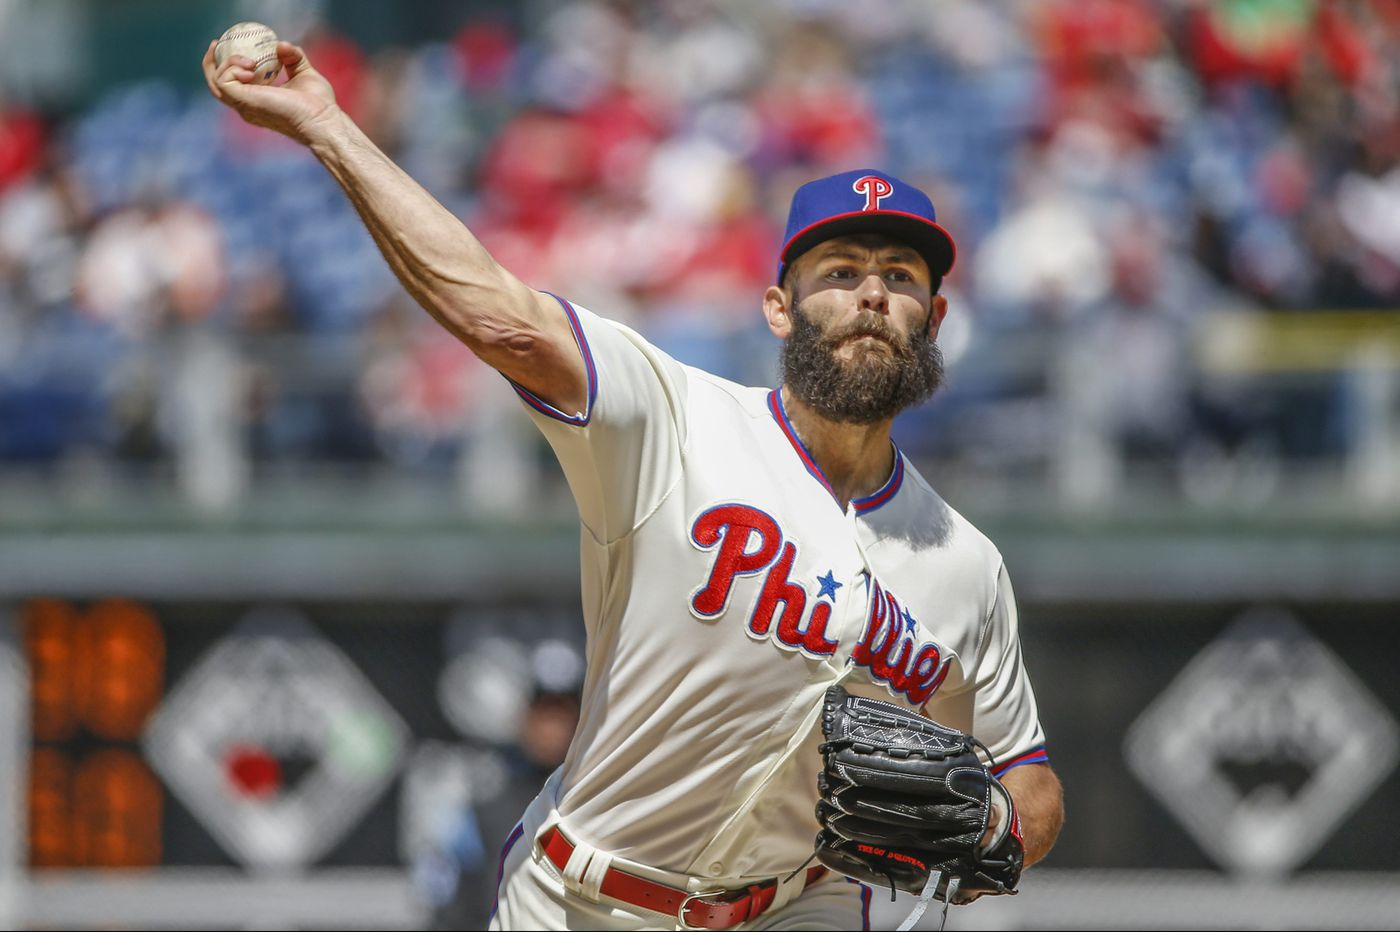 Phillies have great chance to end first half with a sweep   Extra Innings